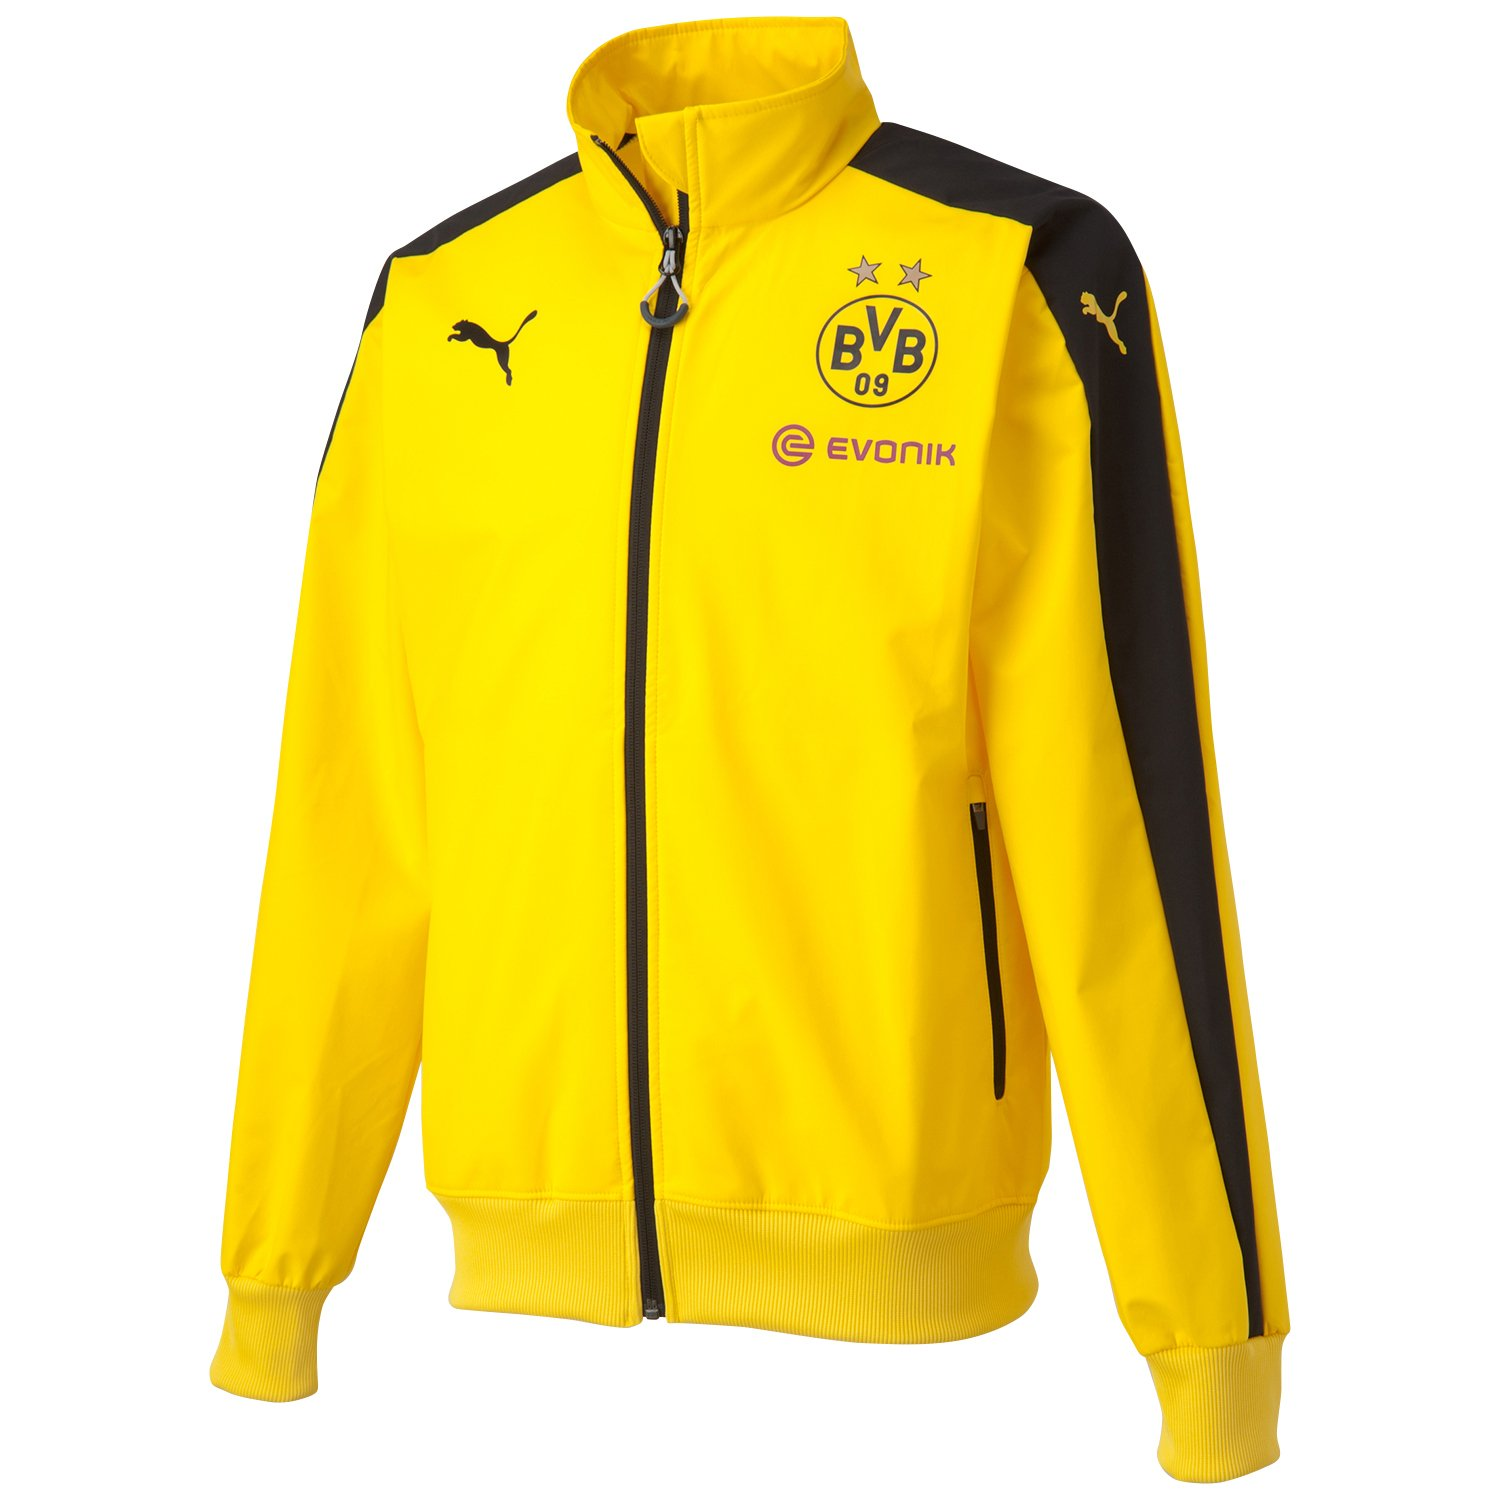 2015-2016 Borussia Dortmund Puma Stadium Jacket (Yellow)